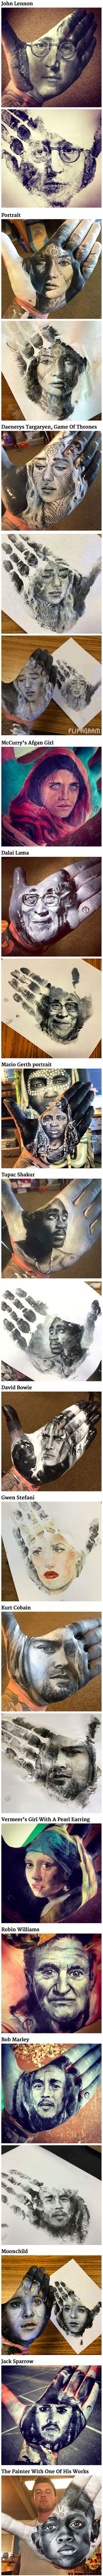 "Instead of painting directly on paper, first-grade school teacher Russel Powell paints realistic portraits directly on his hand, then using it as a stamp. The San Jose-based teacher-artist paints quickly enough that the paint doesn't dry, letting his palm-lines become part of the piece. Powell calls this process ""hand-stamping,"" and even incorporates similar art projects into his classes."